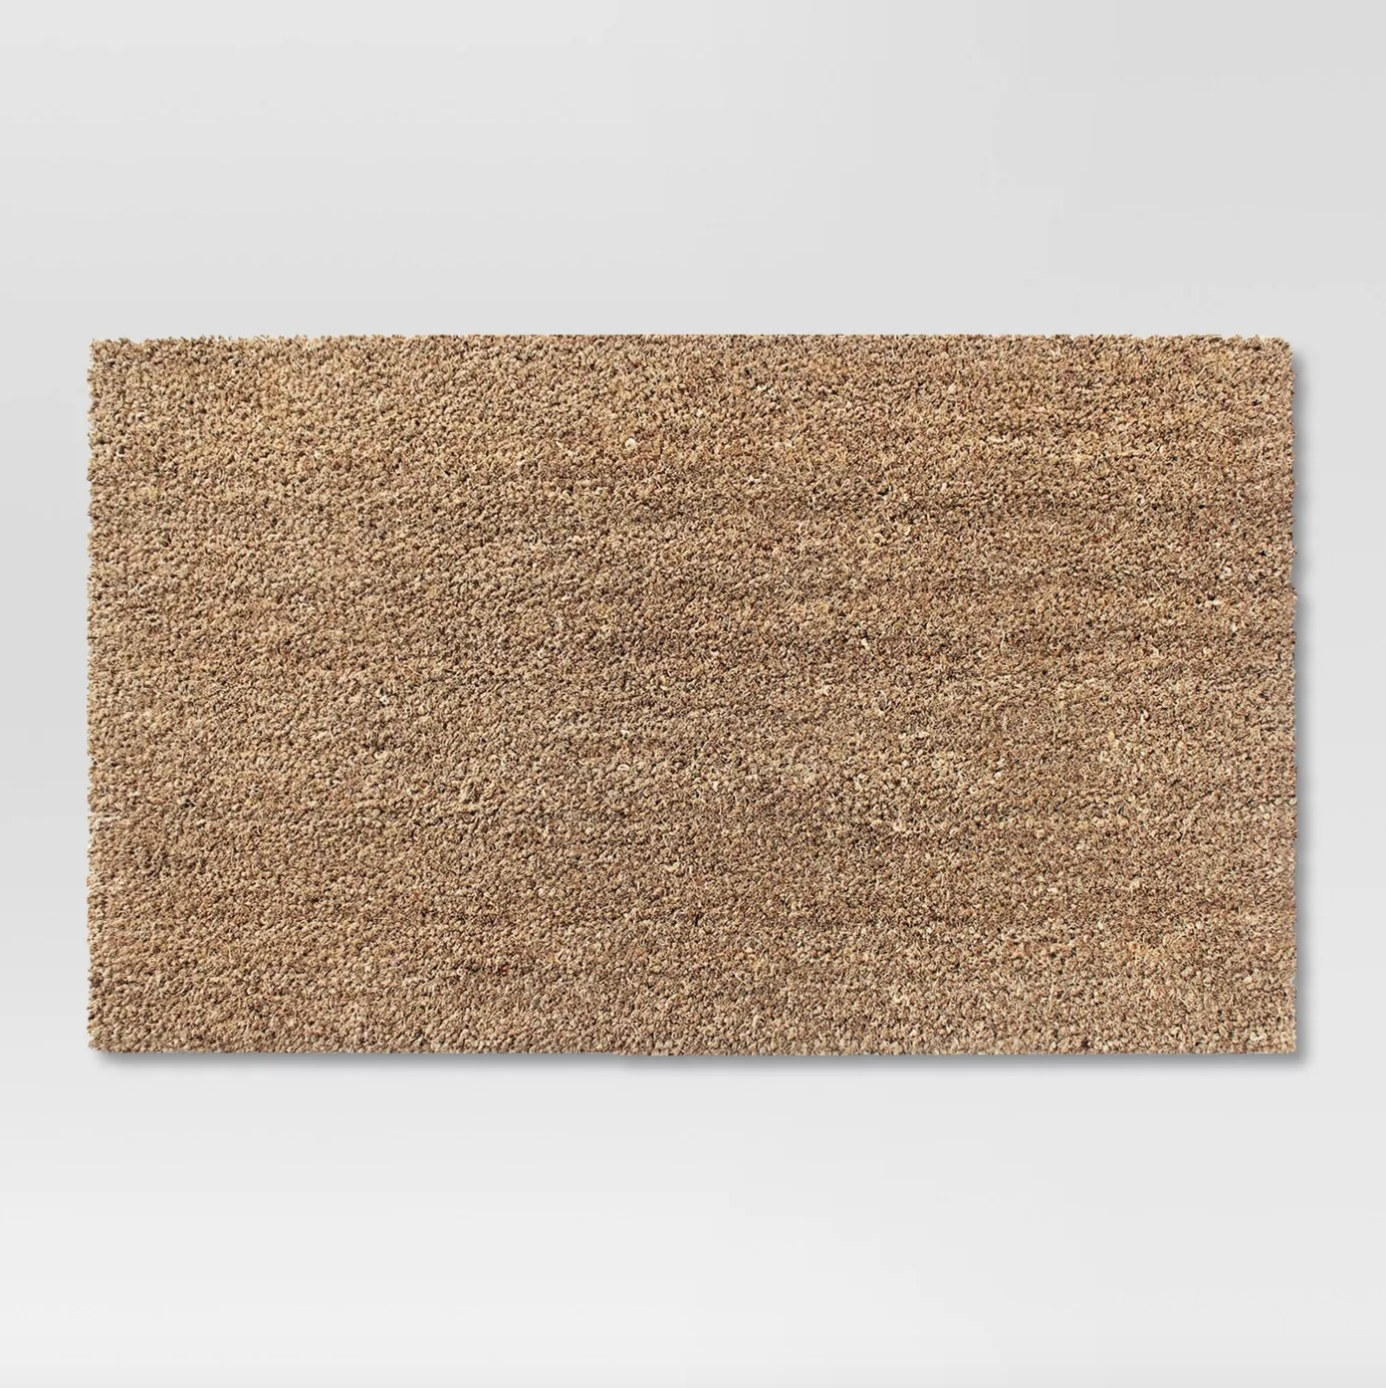 The solid doormat in beige